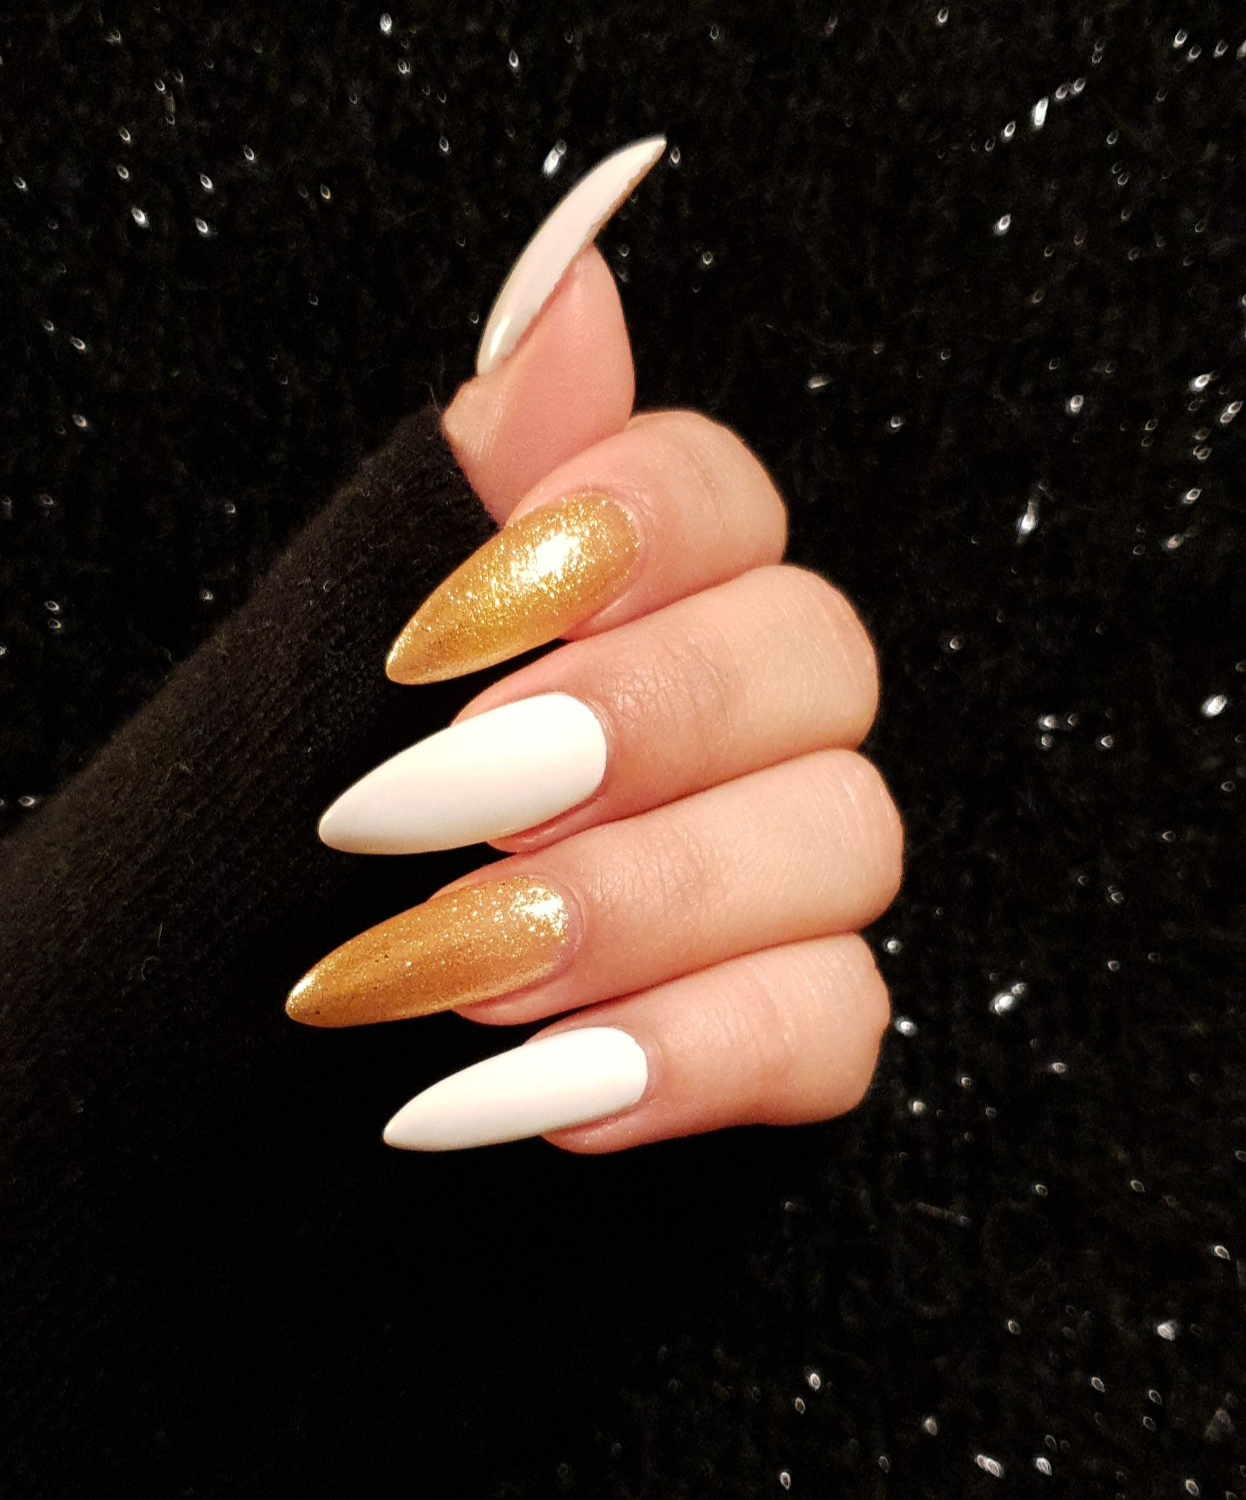 Coole Gelnägel Beauty Fashion Lifestyle Weiß Goldene Gelnägel